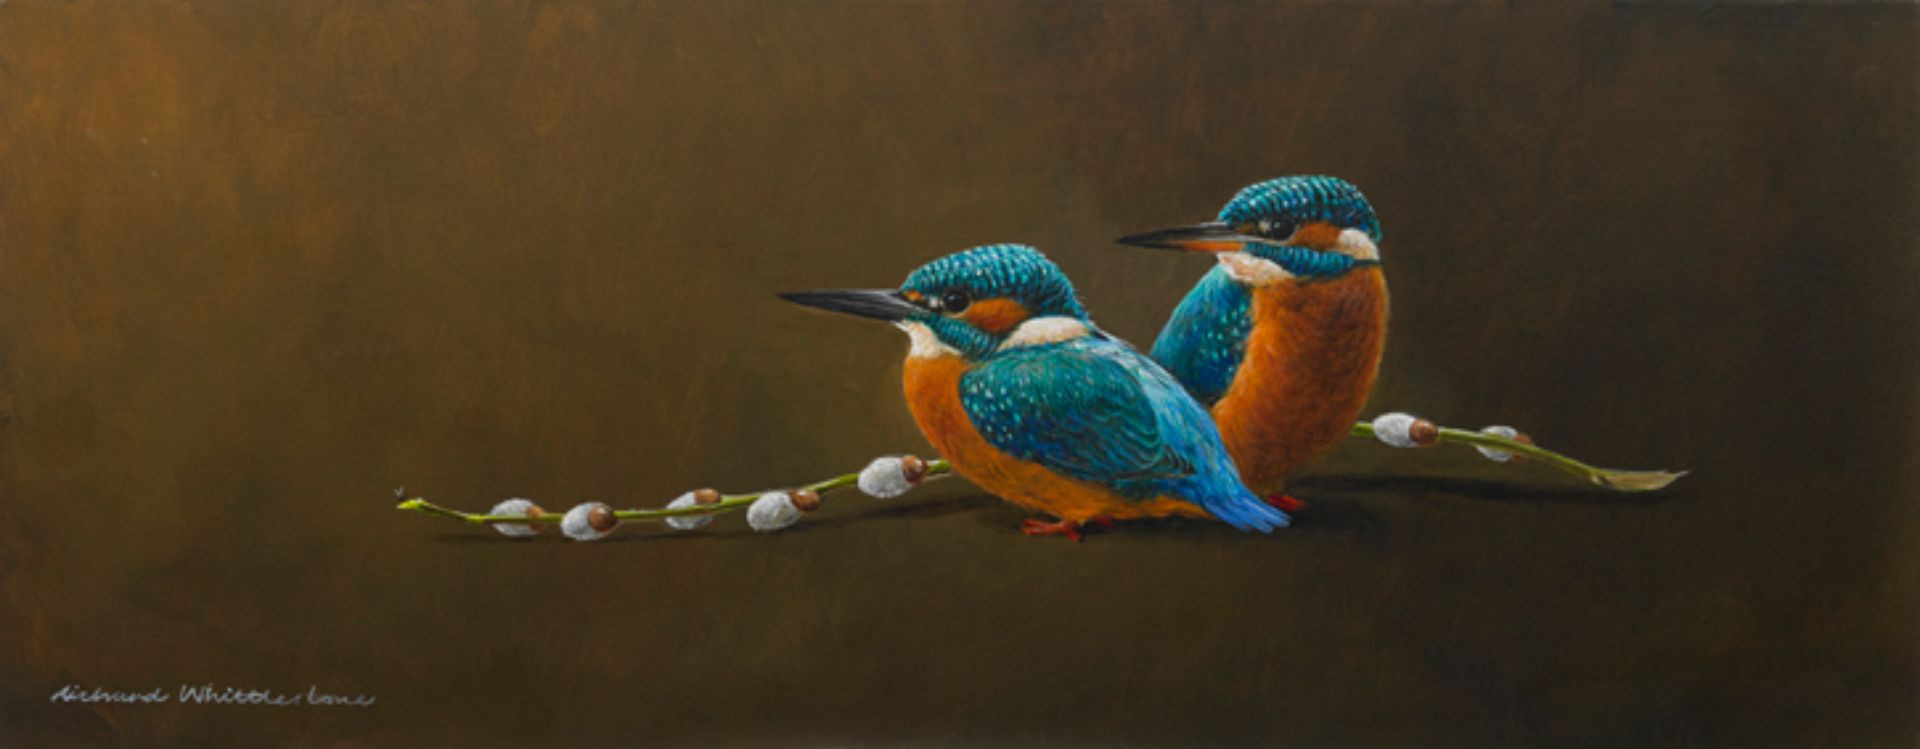 Richard-Whittlestone-Prints-Kingfishers-